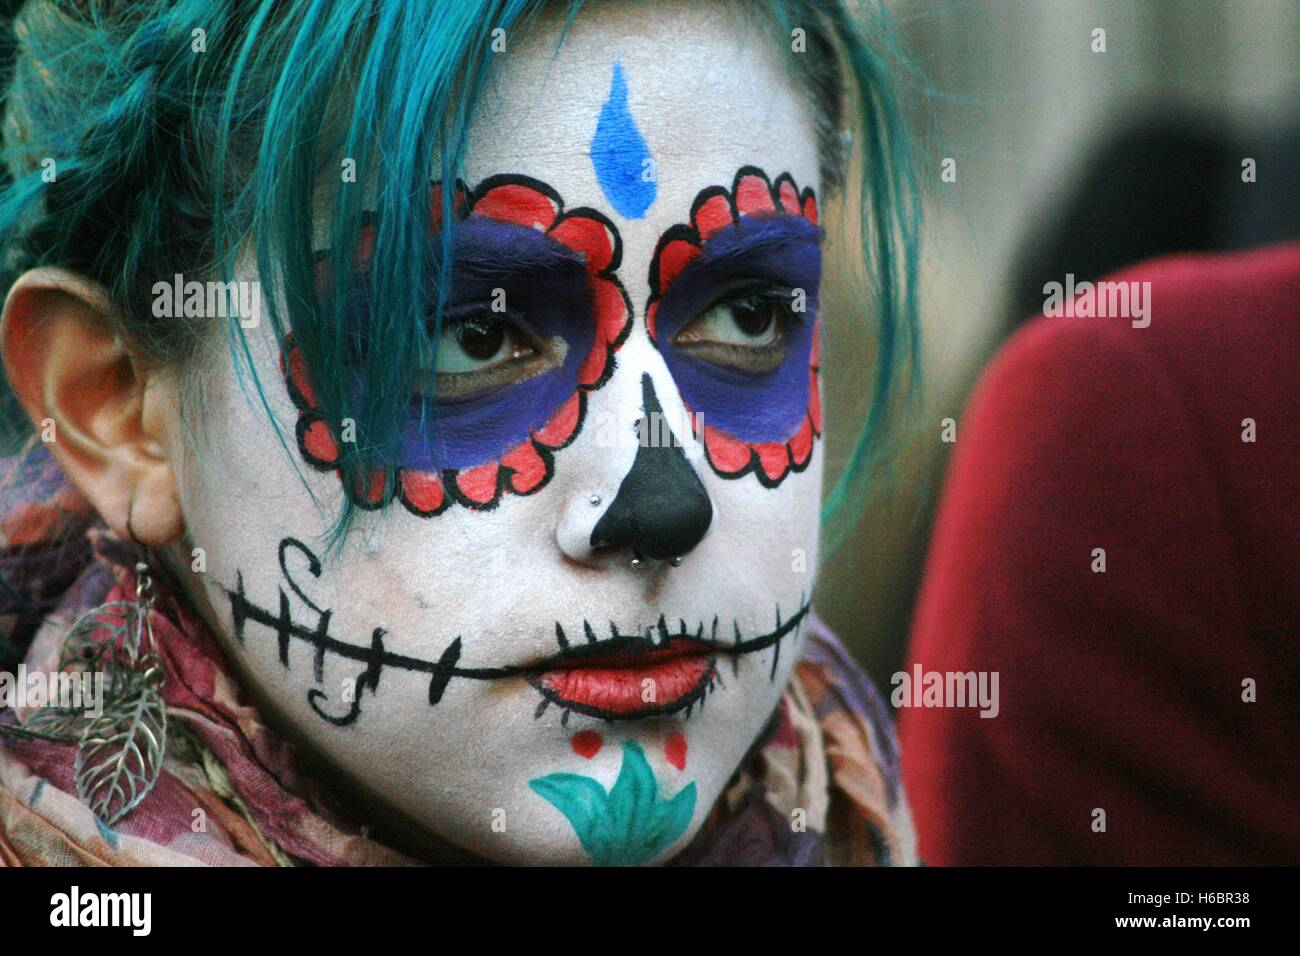 A protester paints her face in the style of the Mexican Day of the Dead, a celebration of the dead, during a protest - Stock Image